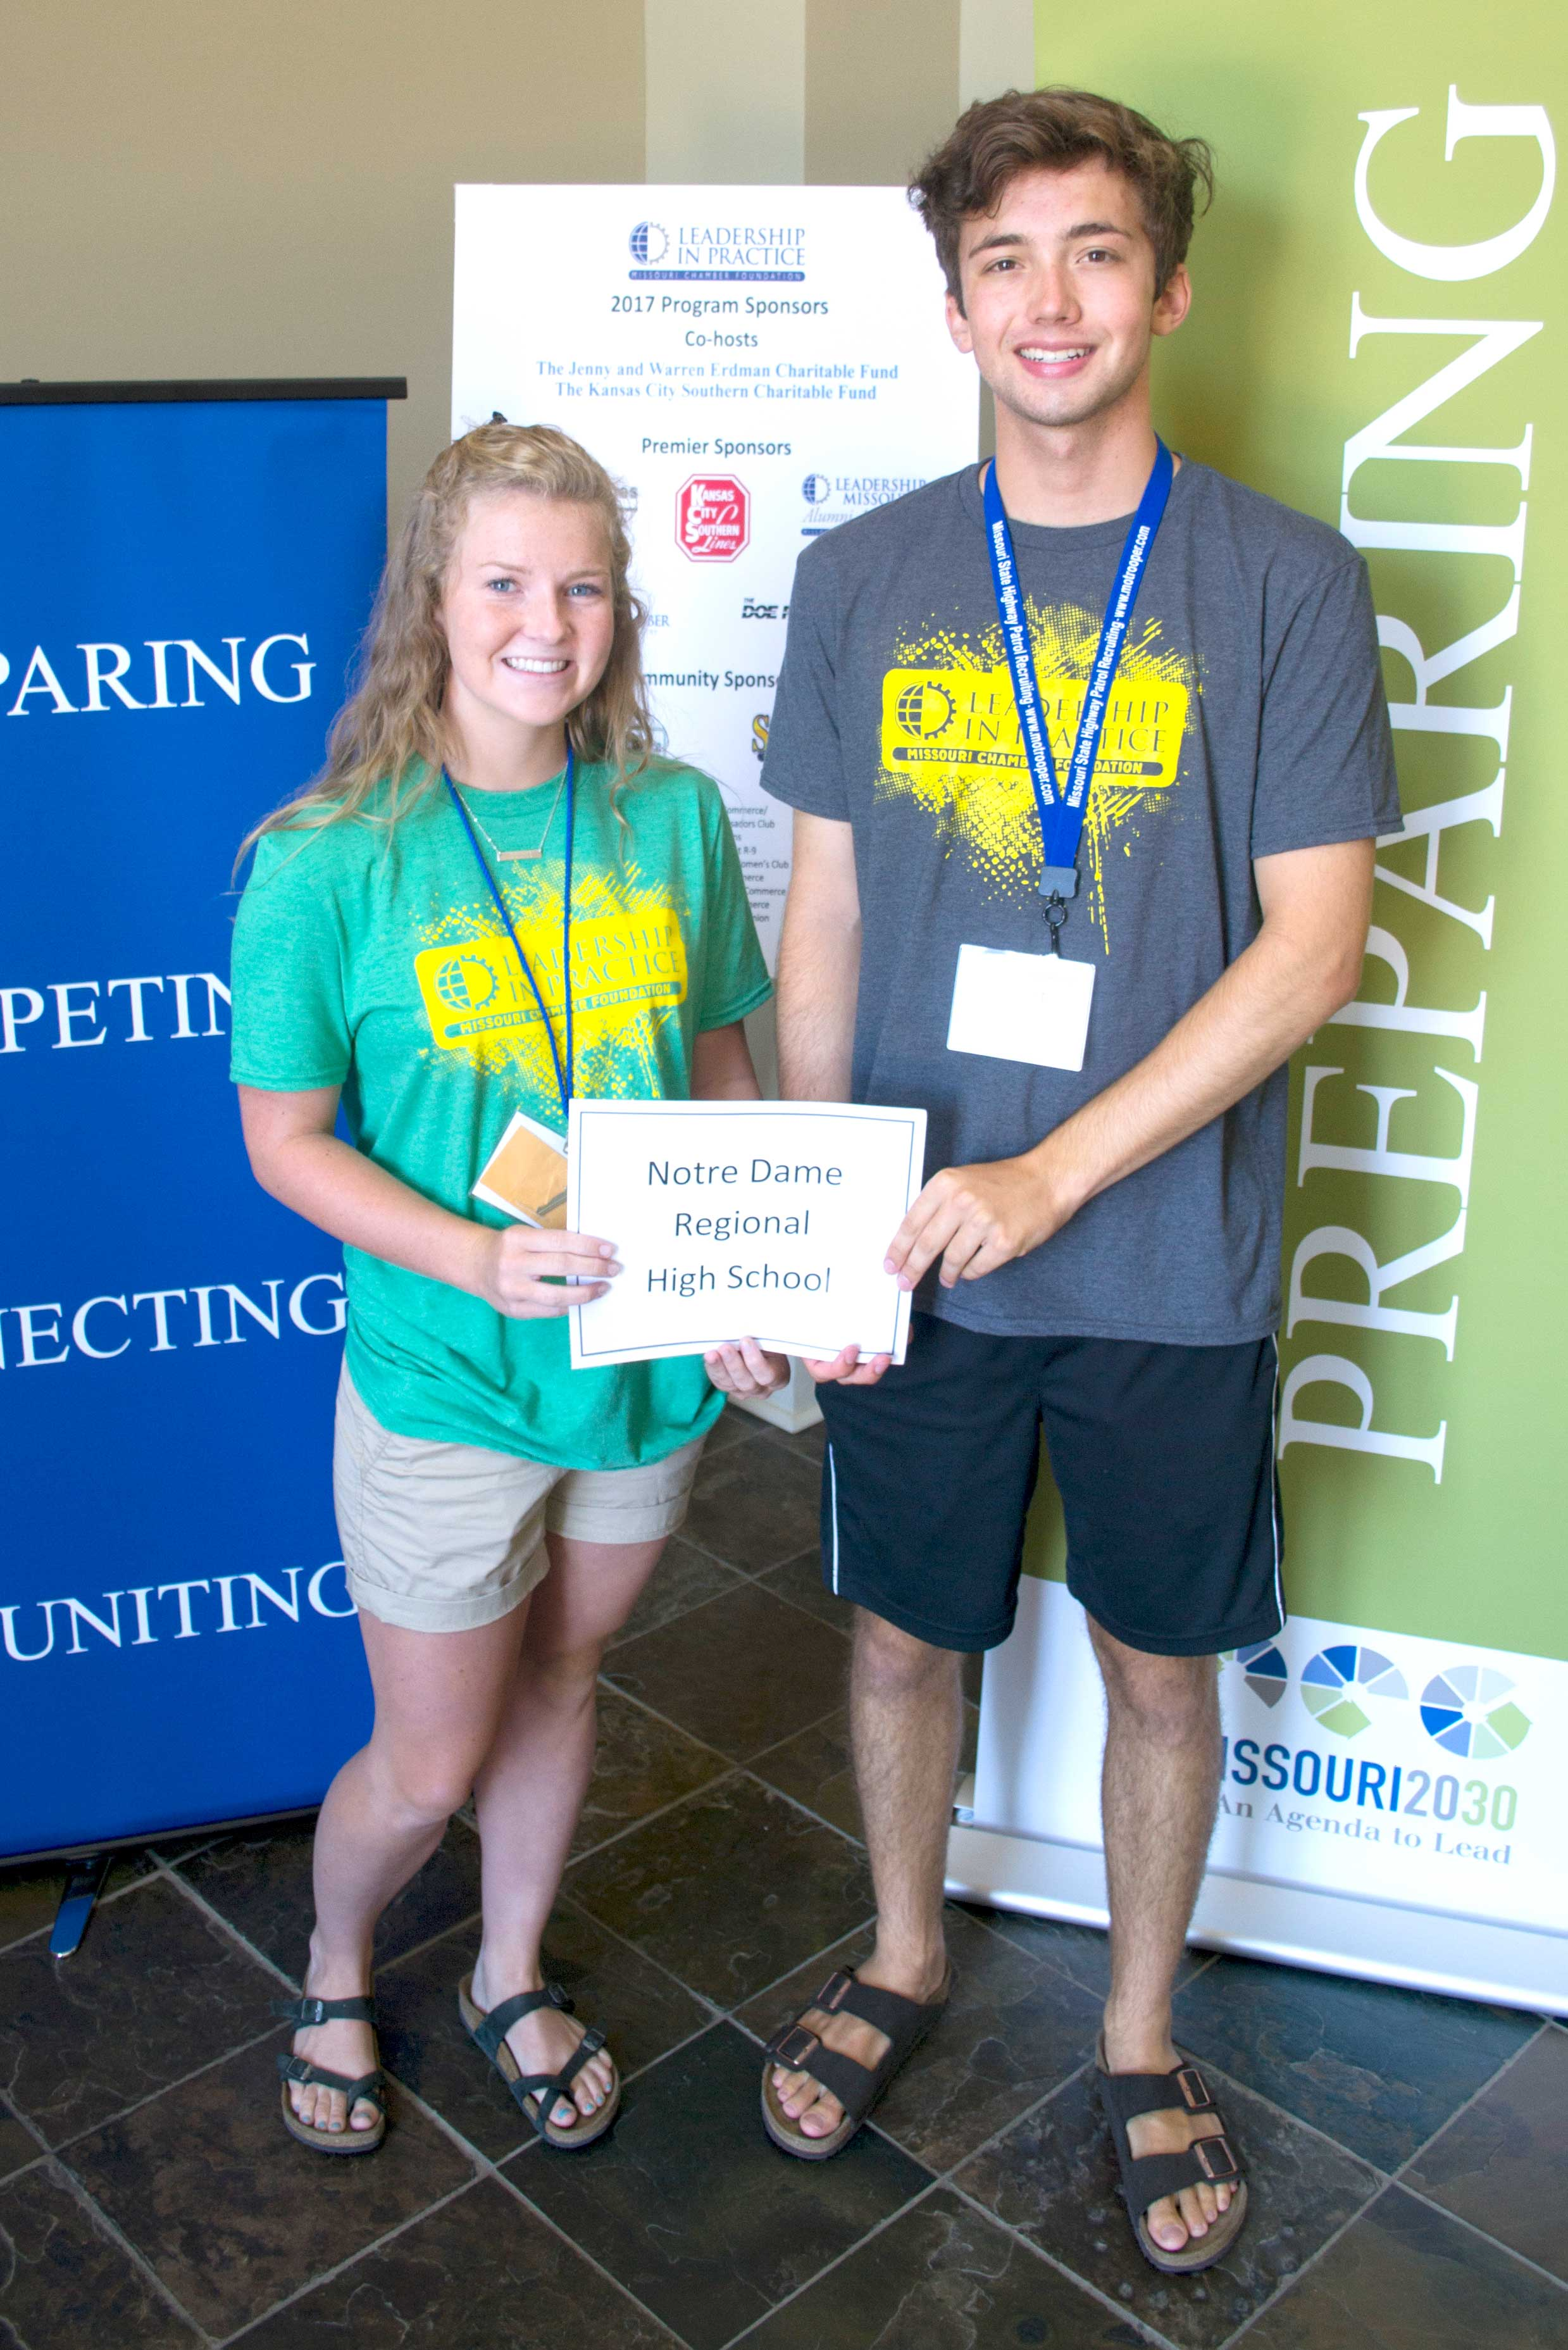 LEADERSHIP IN PRACTICE—Maggie Eby and Grant Wilson, incoming sophomores at Notre Dame Regional High School, Cape Girardeau, attended the Missouri Chamber of Commerce and Industry's Leadership Practice program June 25-28 in Fulton, MO. (Submitted photo)